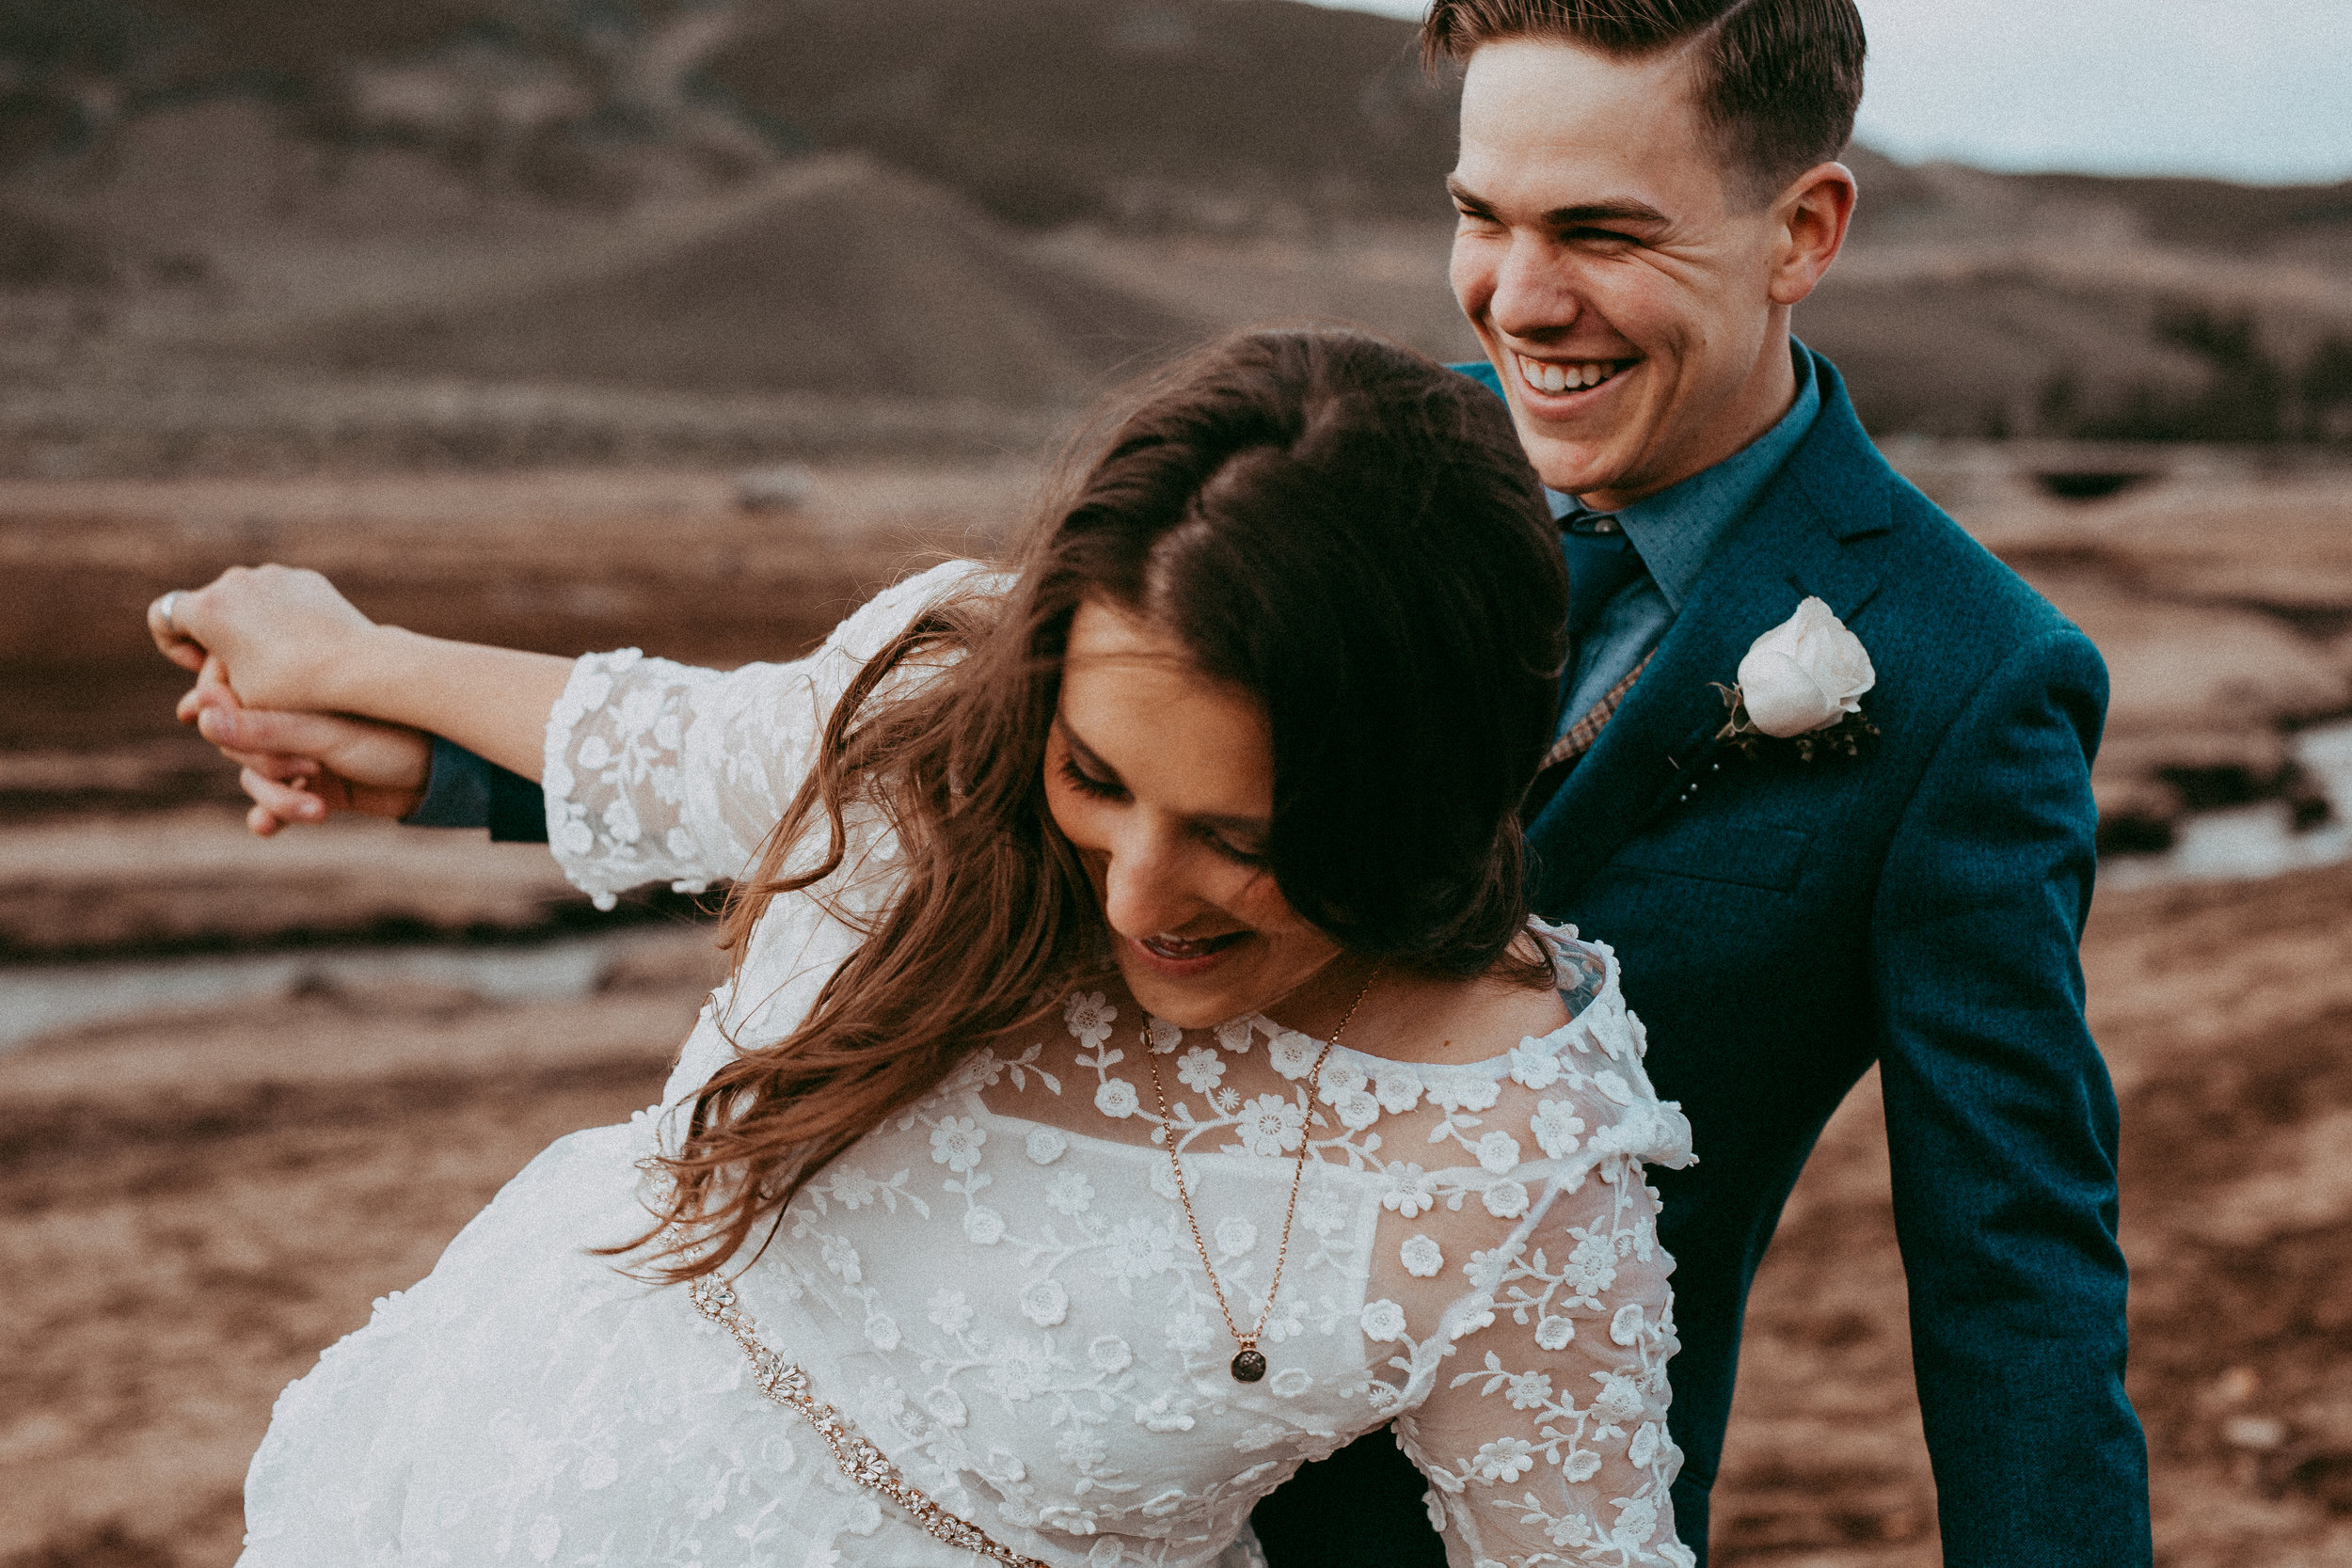 Elopement Special - $300 - Up to 1 hour photographyJust bride & groomLimited to Denver area Mon-ThursPhotography for ceremony, and couple's portrait session.Minimum of 70+ edited images